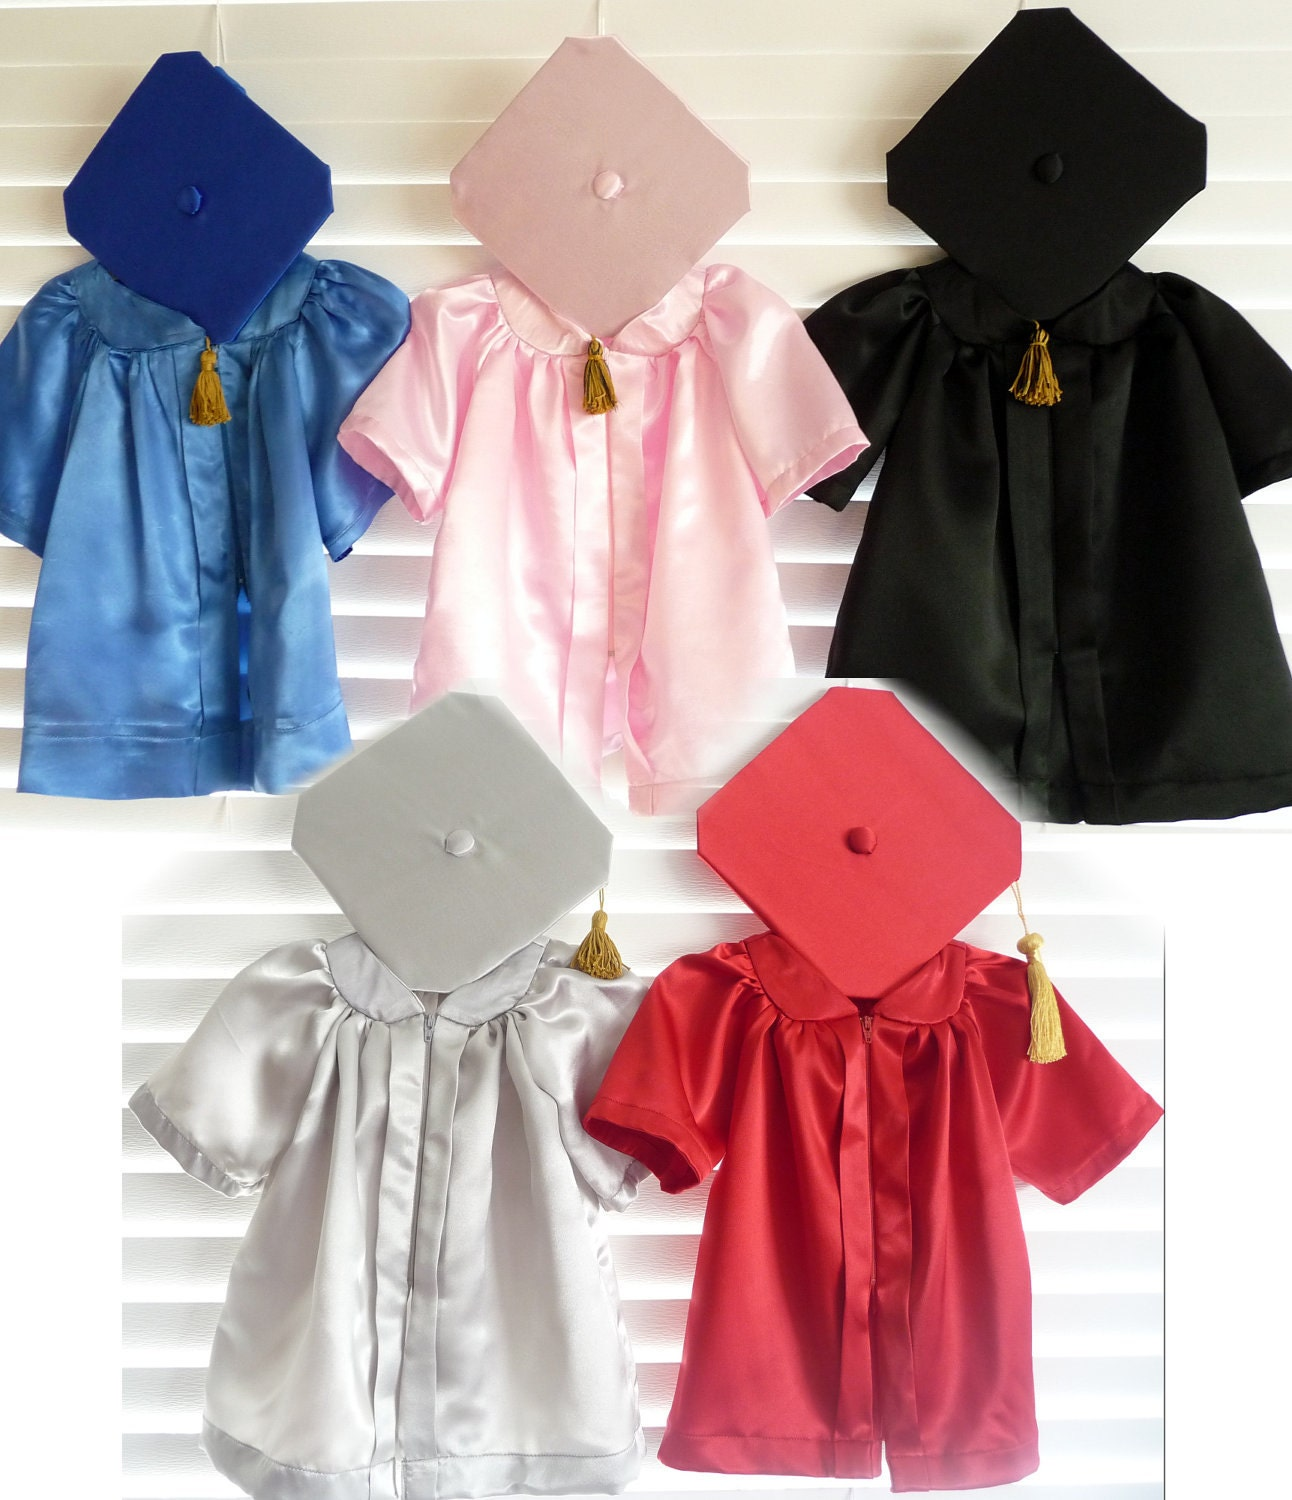 Infant Graduation Cap and Gown/ Robe Outfits for Baby and